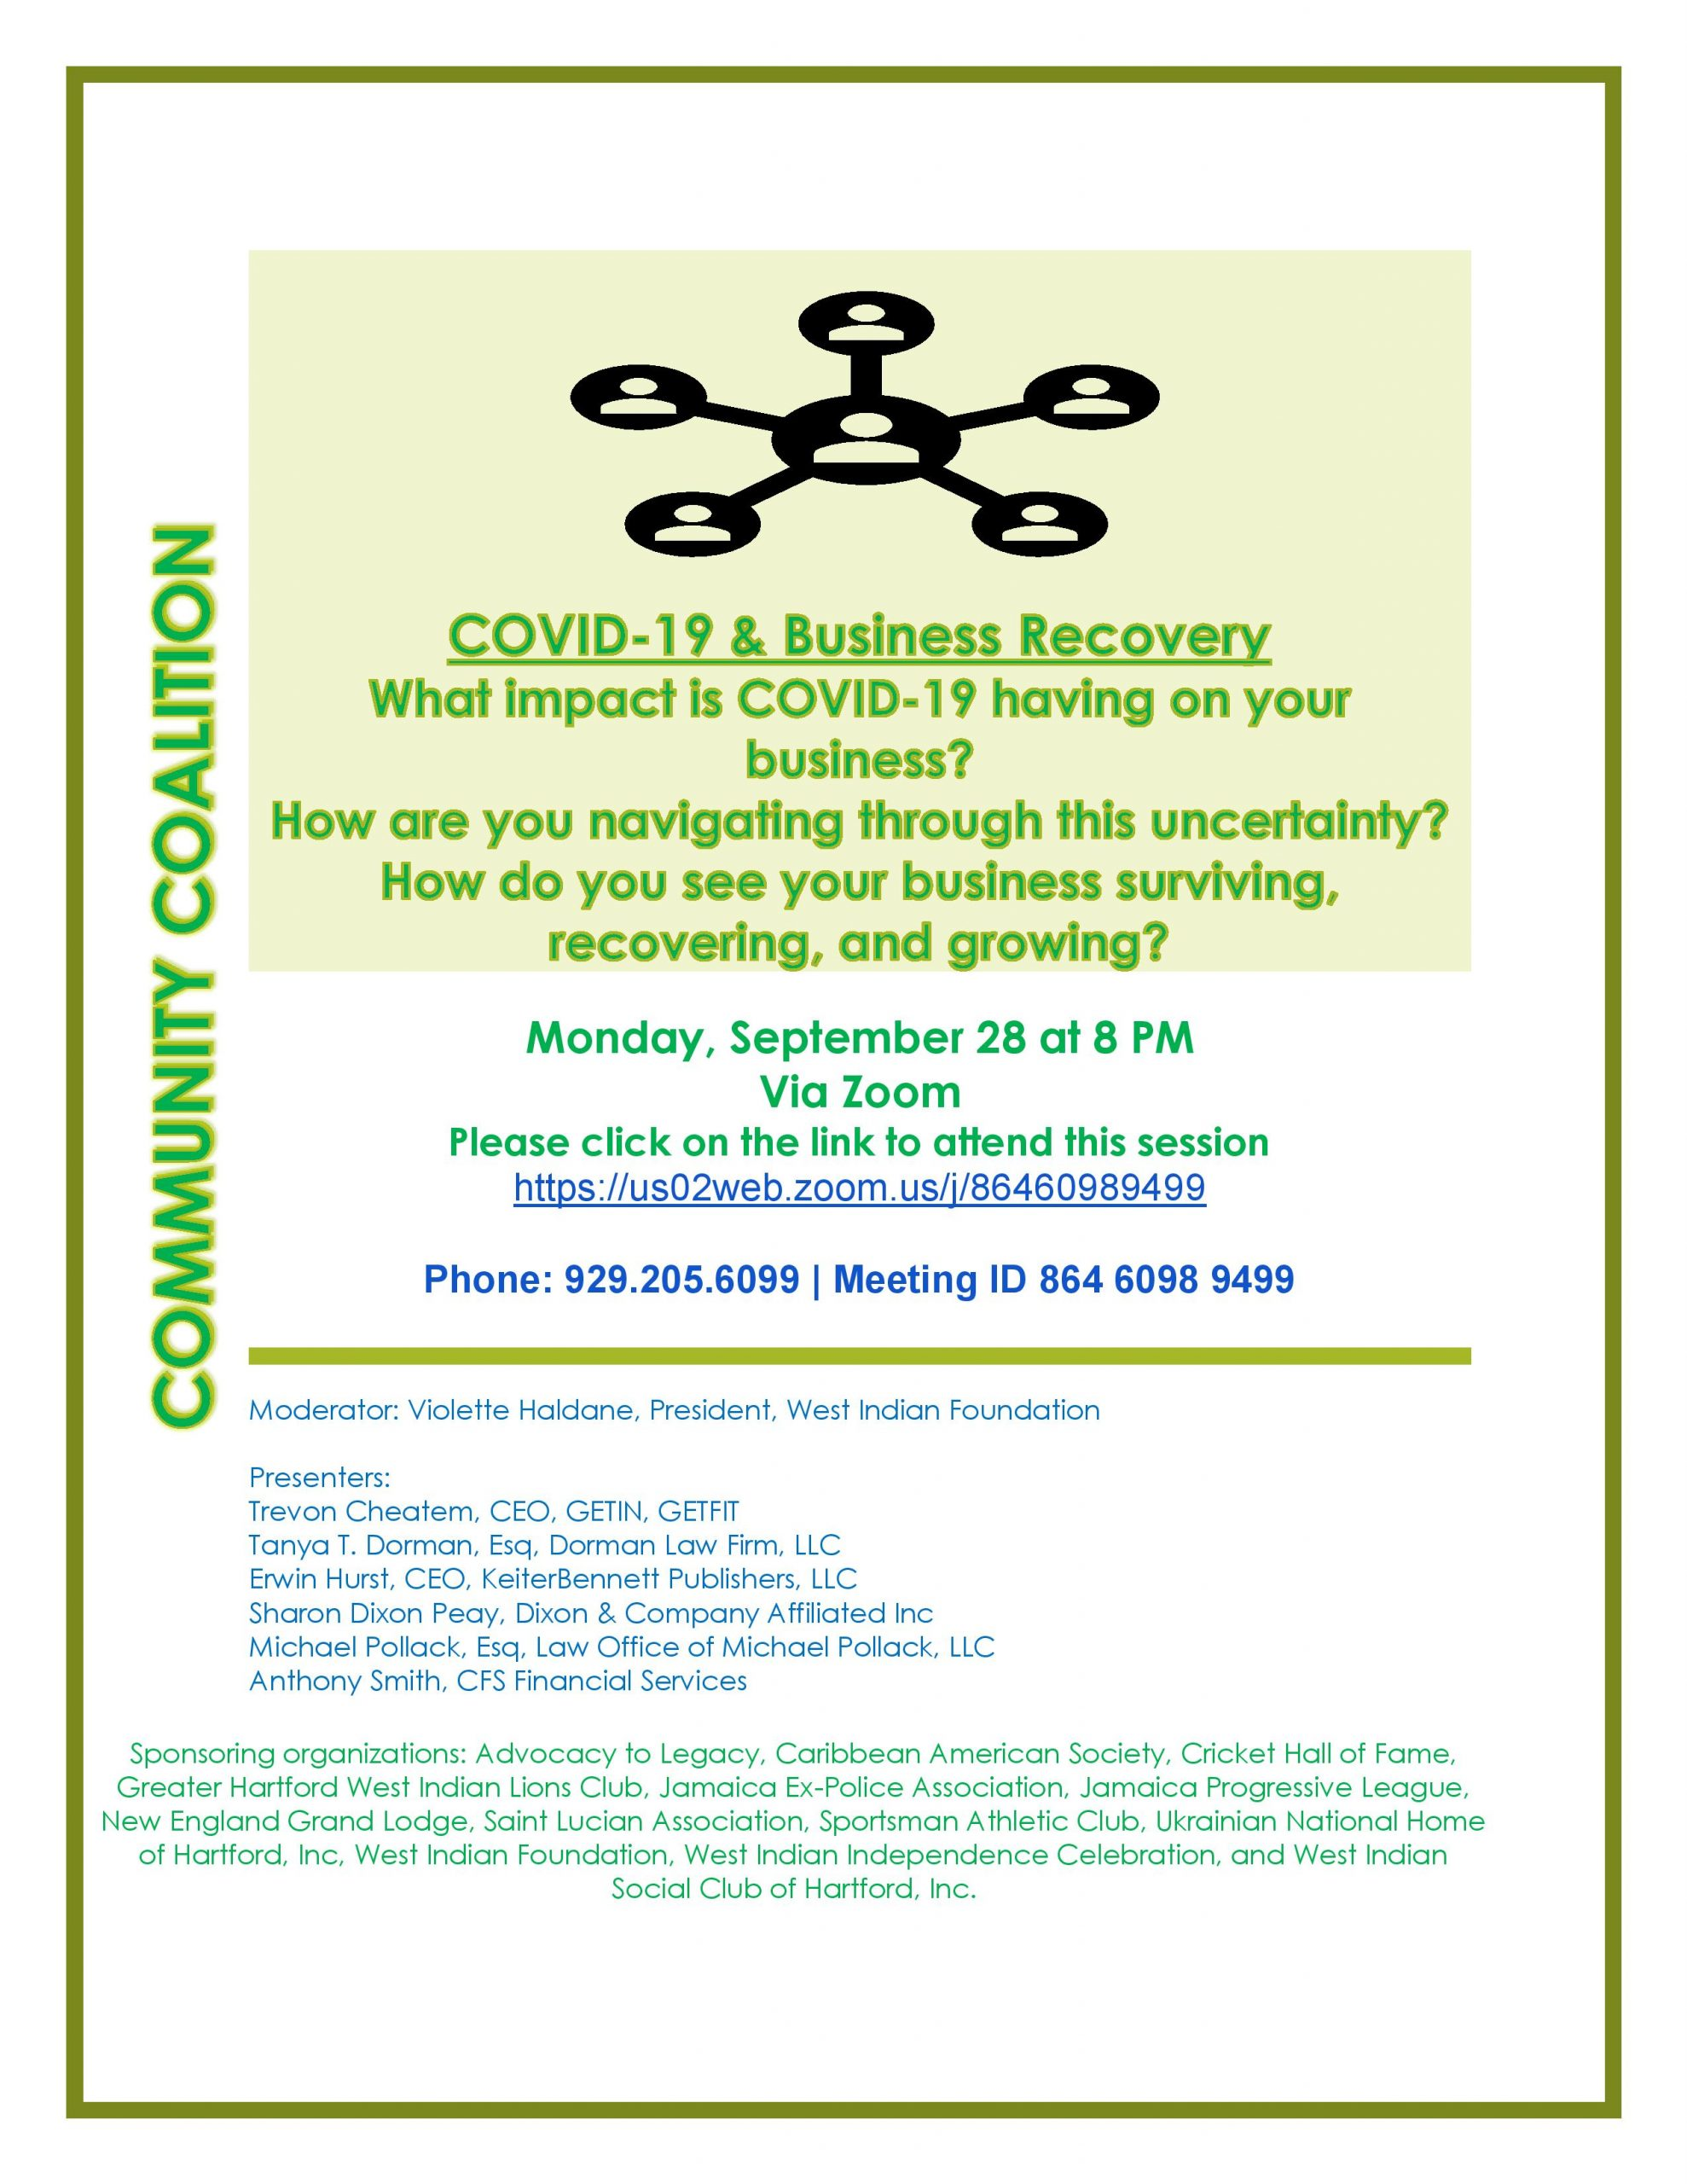 Small Business Marketplace Series: COVID-19 & Business Recovery